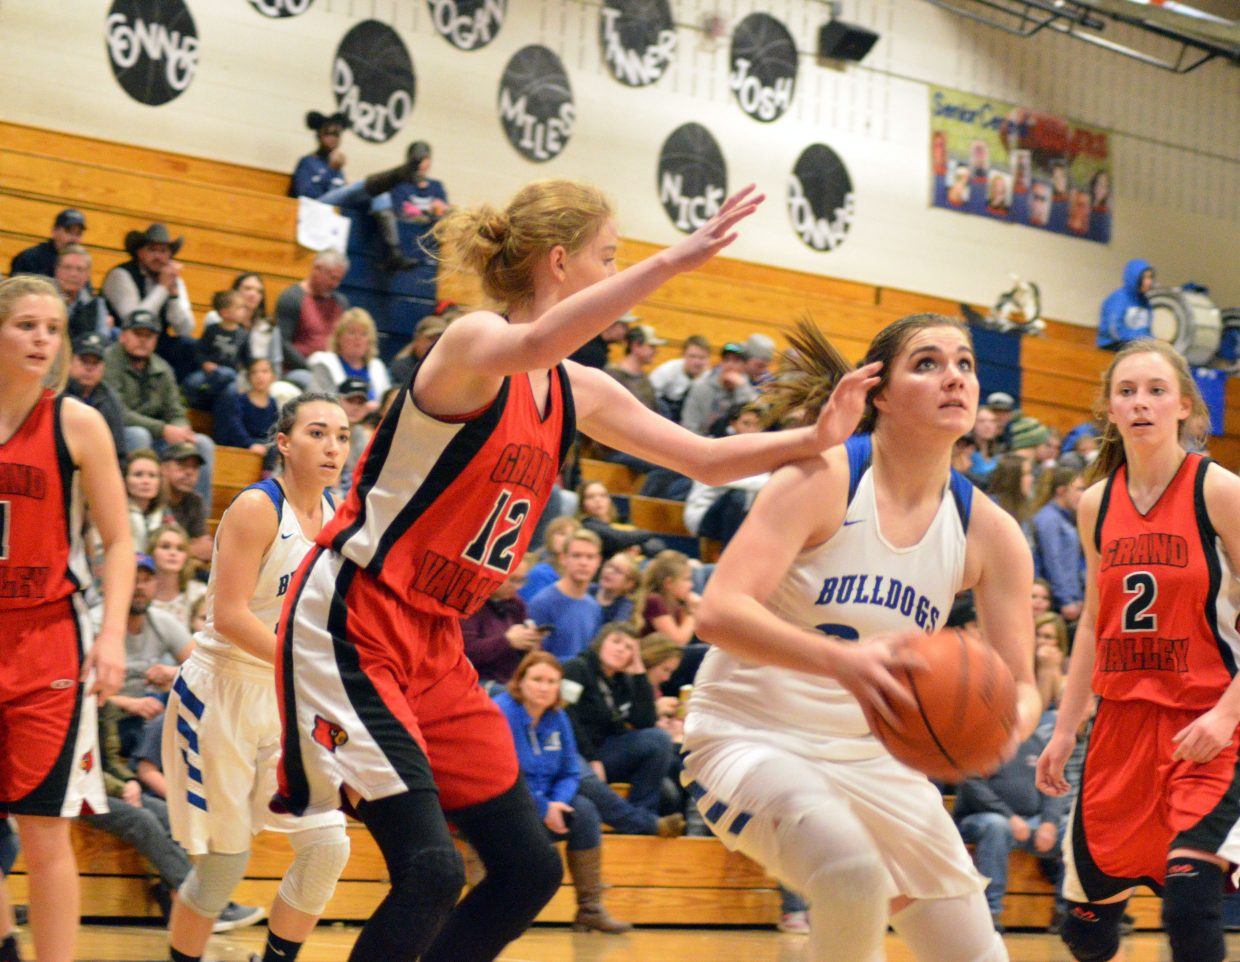 Moffat County High School's Jenna Timmer makes her move, cutting through the Grand Valley defense.